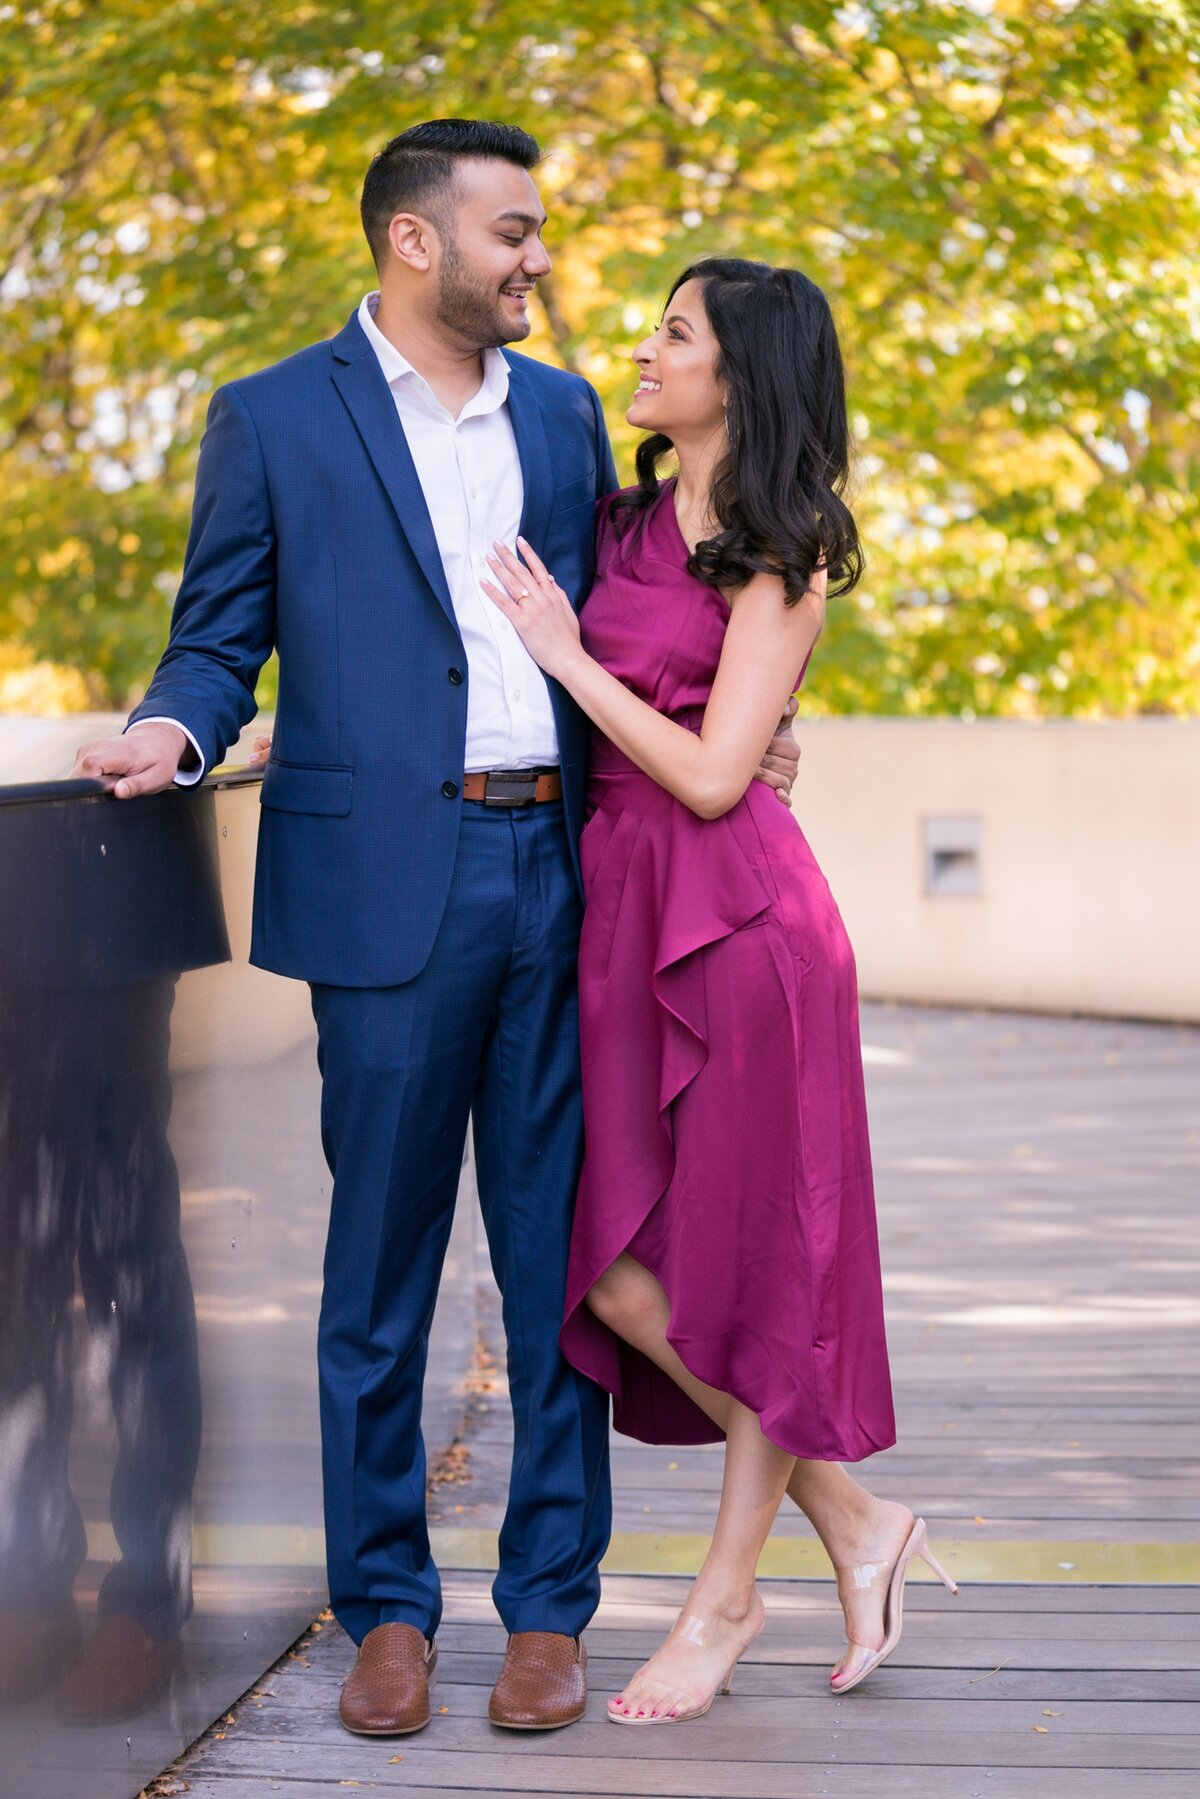 Le Cape Weddings - Chicago Engagement Session-5.jpg